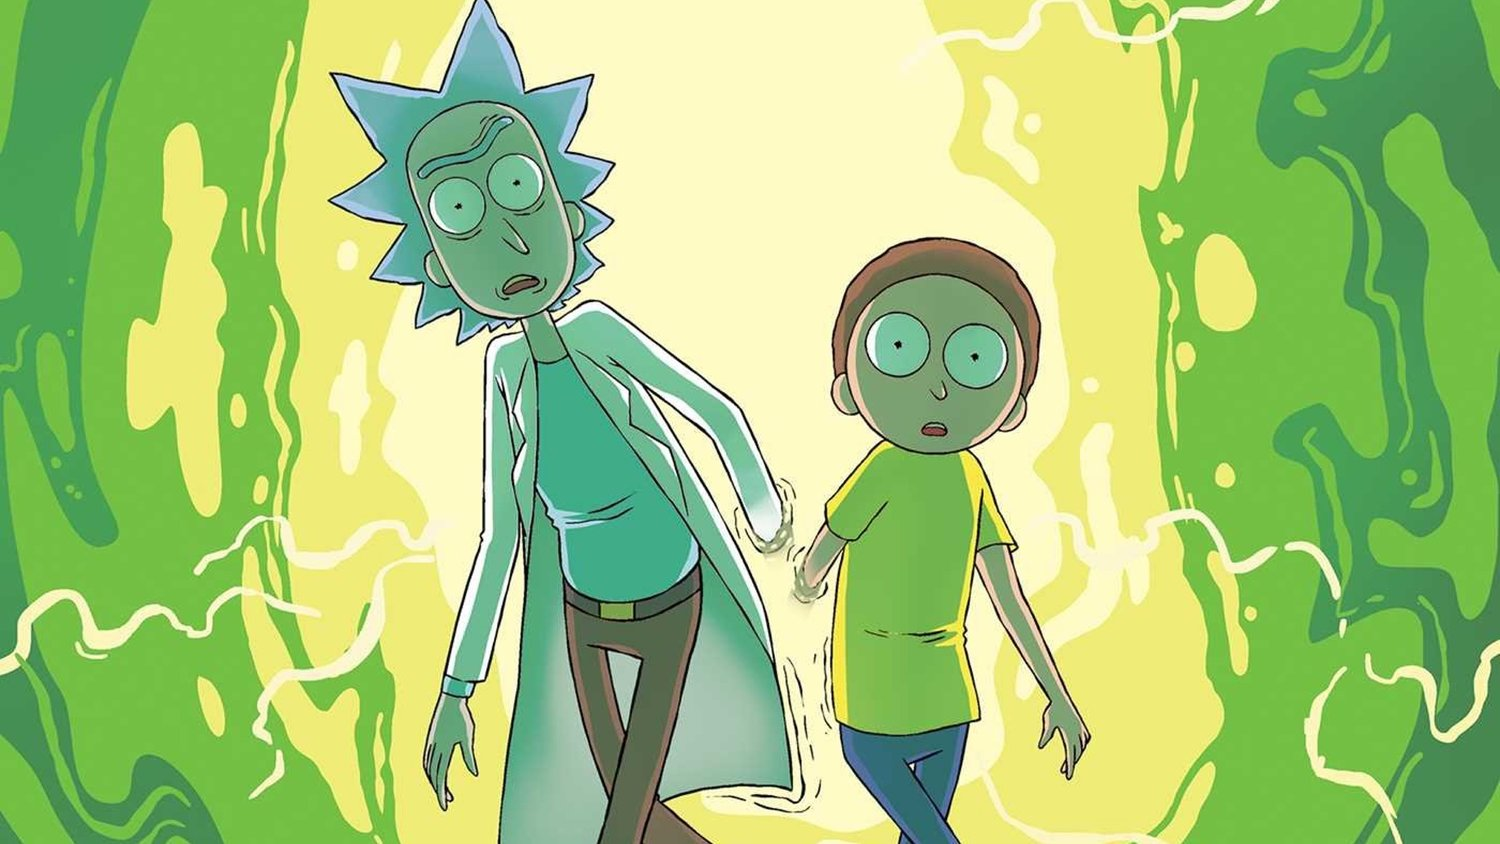 Rick and Morty Season 4 Episode 8 Air Date and How to Watch Online